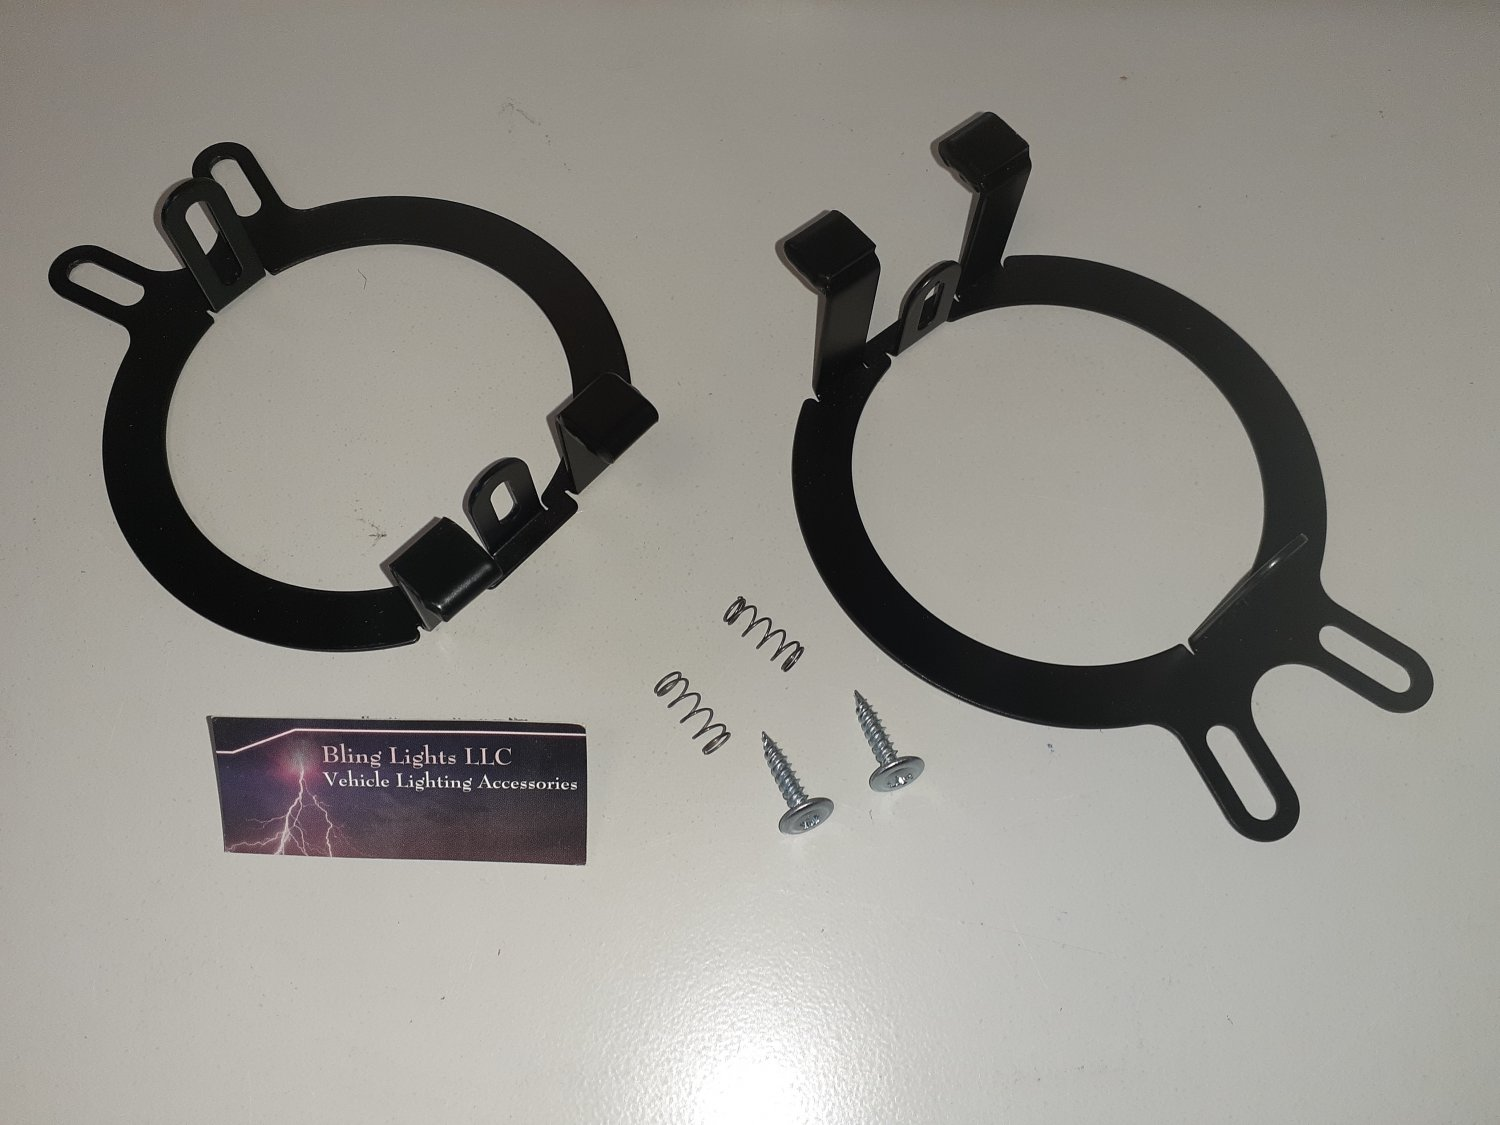 PIAA LP530 Driving Fog Light Kit Brackets Only for 2014-2021 Toyota Tundra